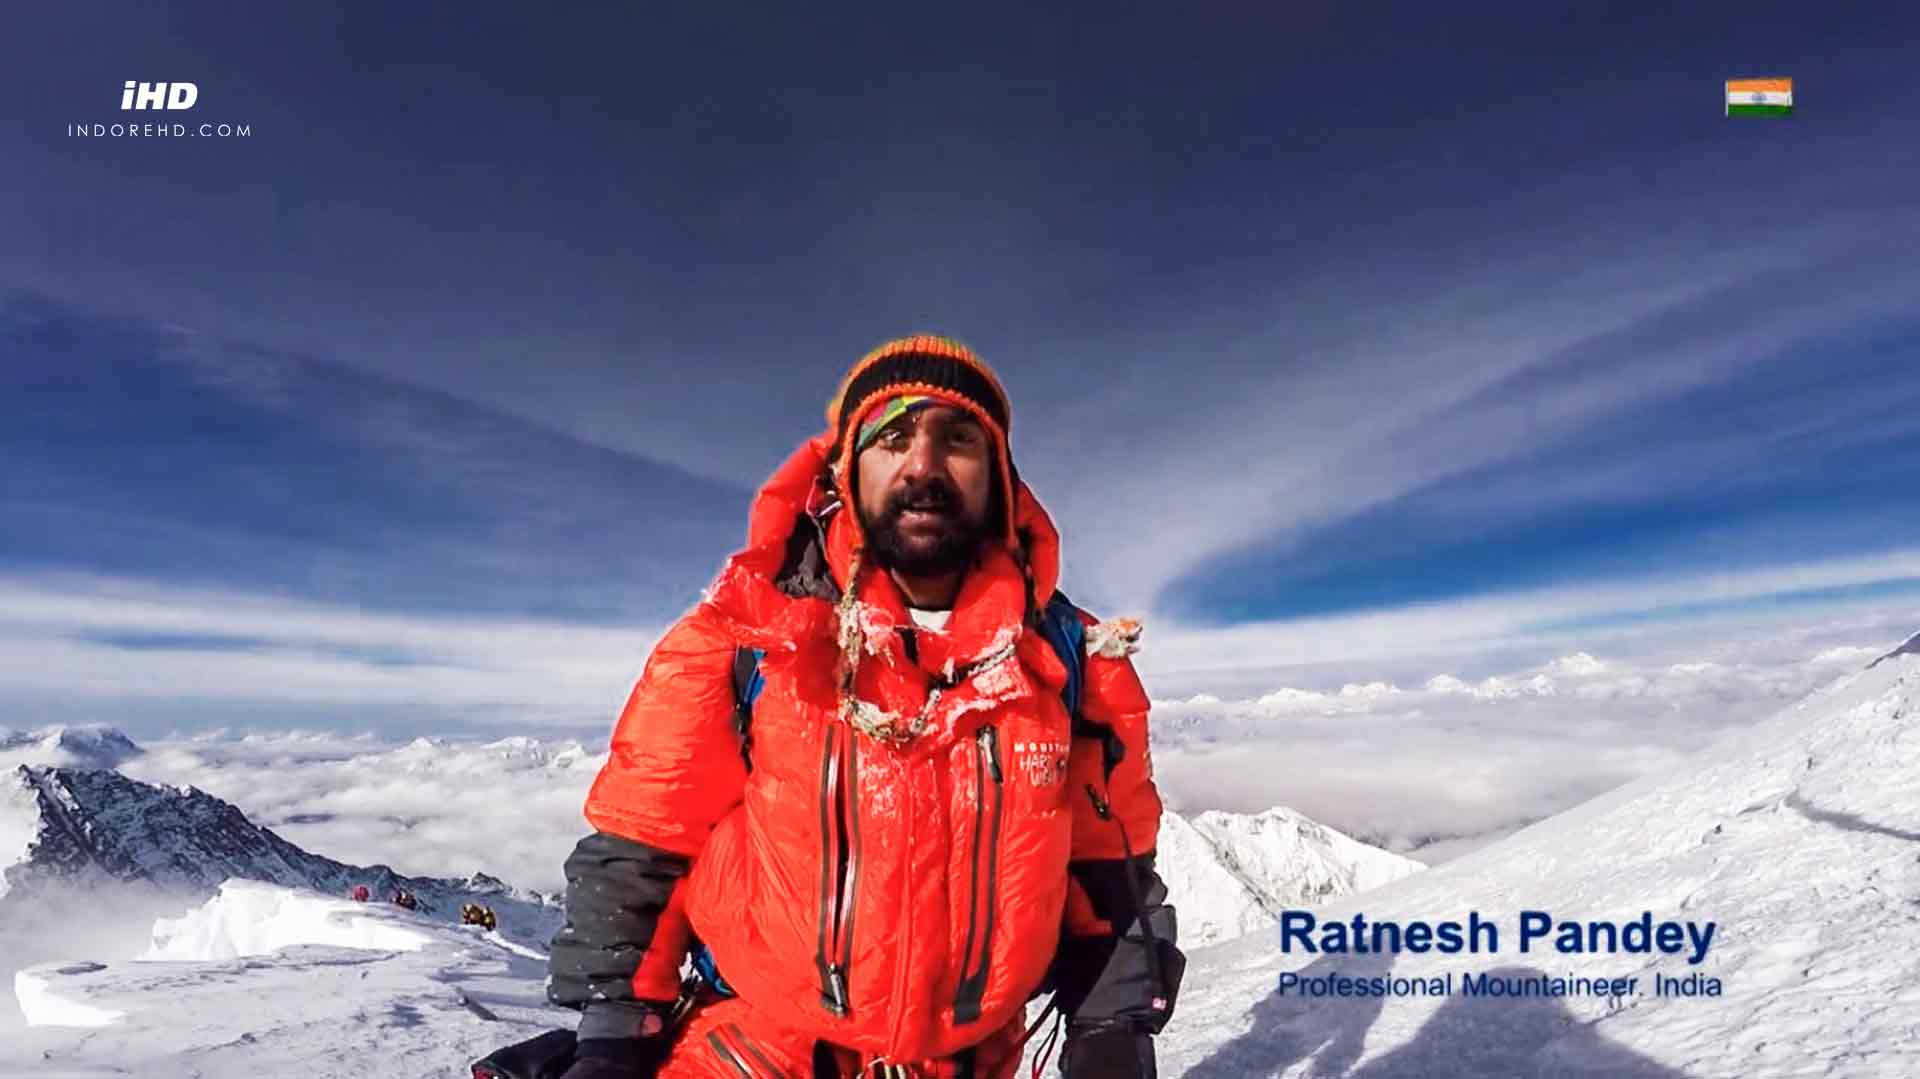 Ratnesh-Pandey-Mount-Everest-National-Anthem-Singing-IndoreHD